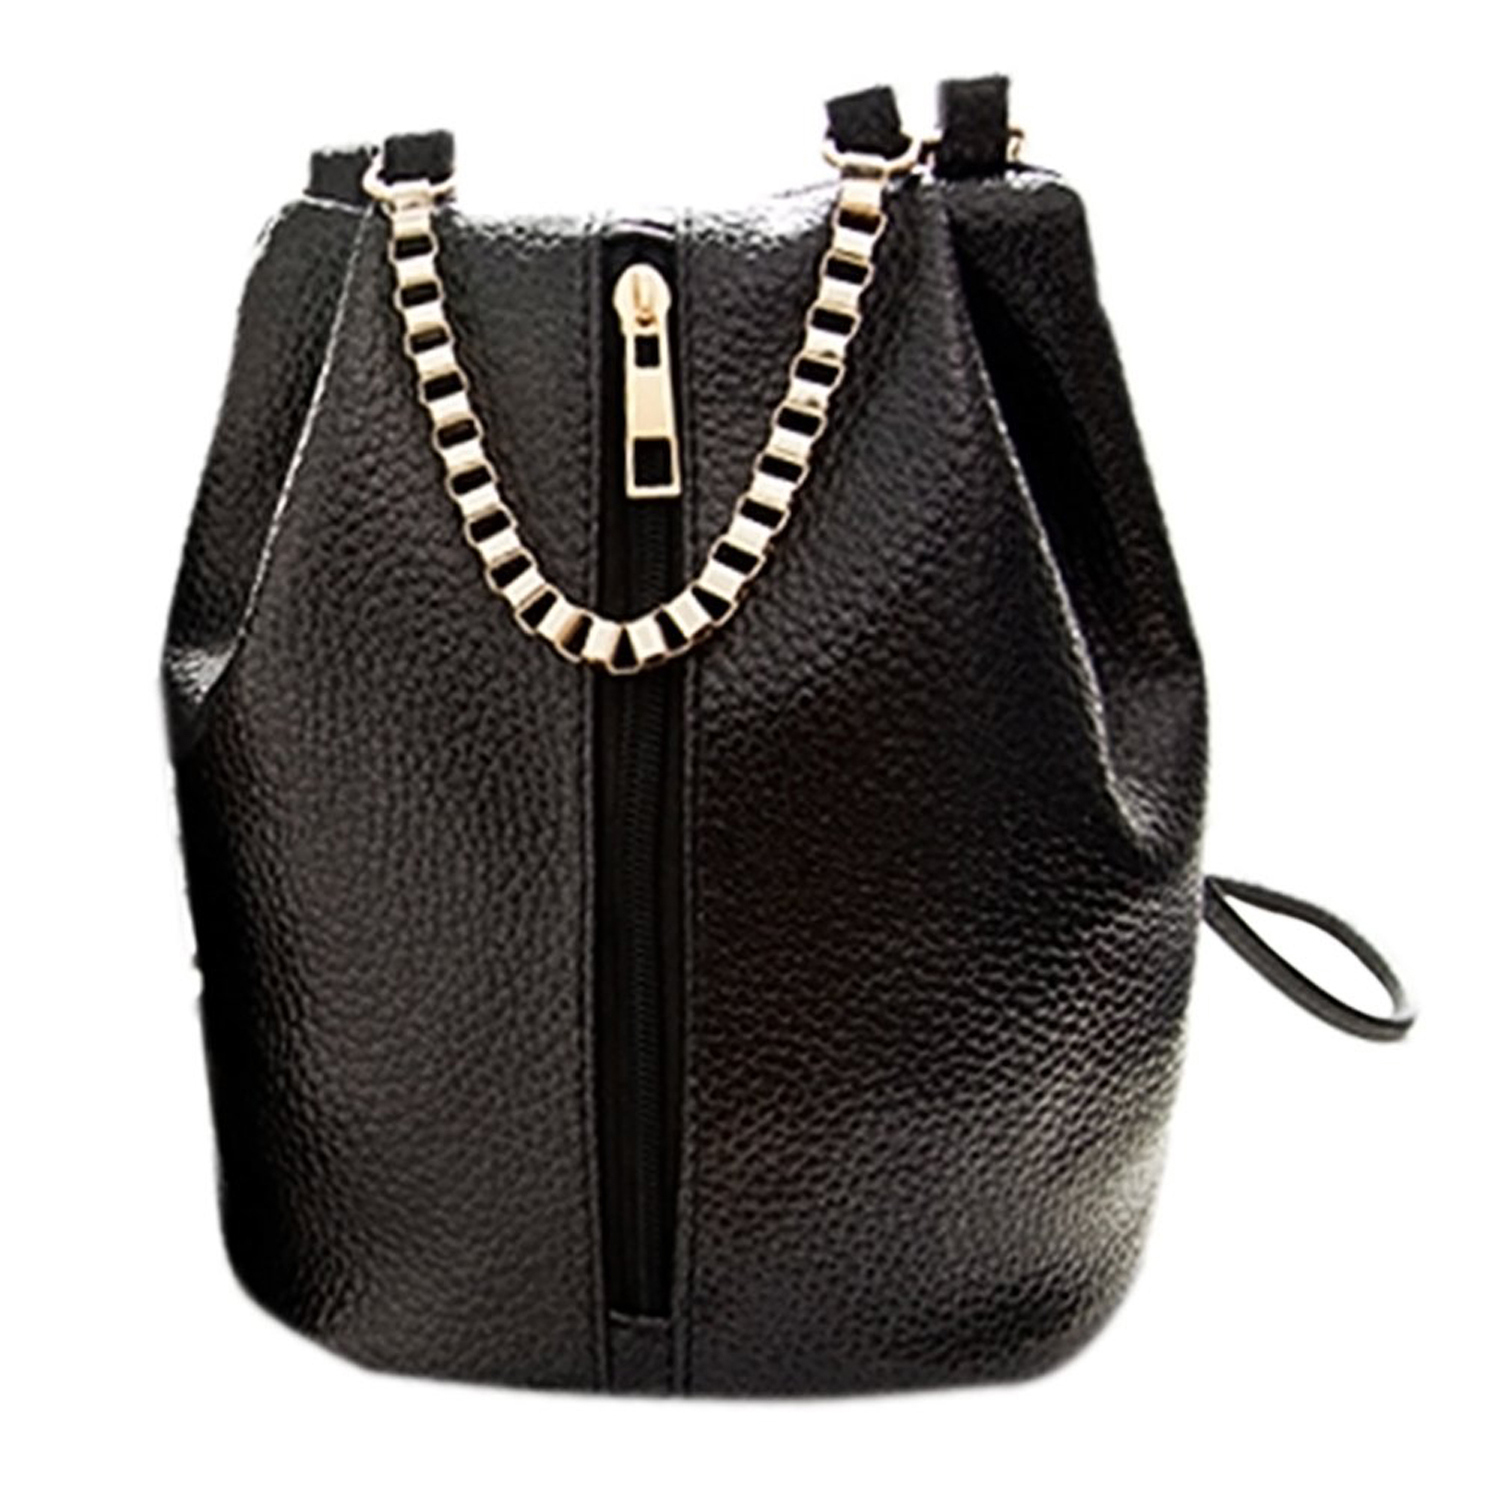 FGGS Hot New Vintage Ladies Shoulder Handbag Women Handbag girl bags Messenger B